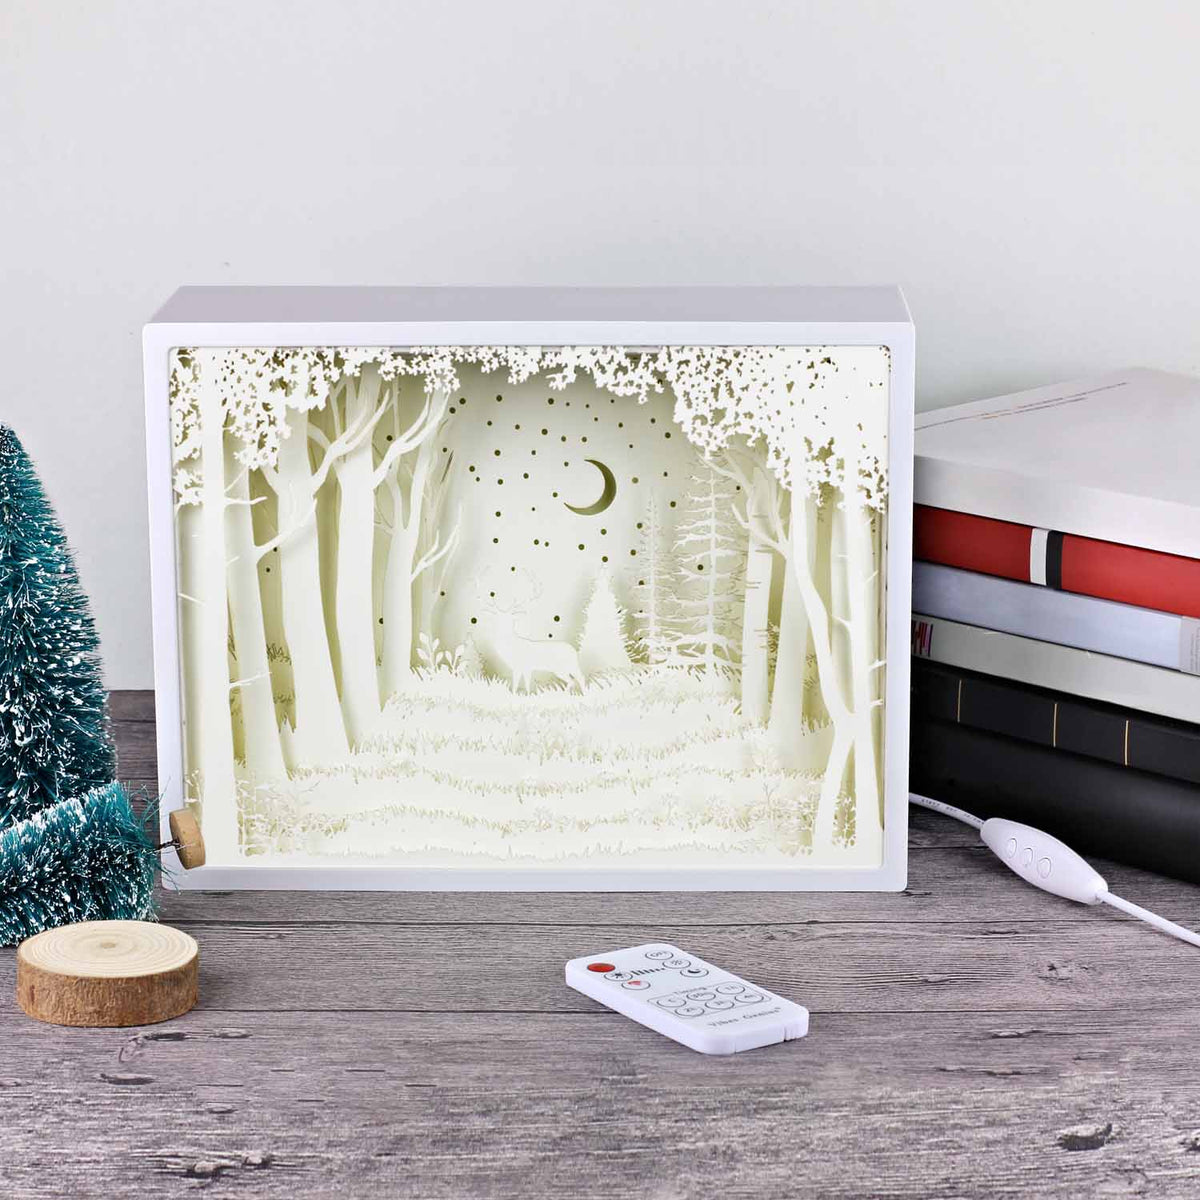 Papercut Light Boxes The Deer In The Deep Forest At Night Vibesgenius